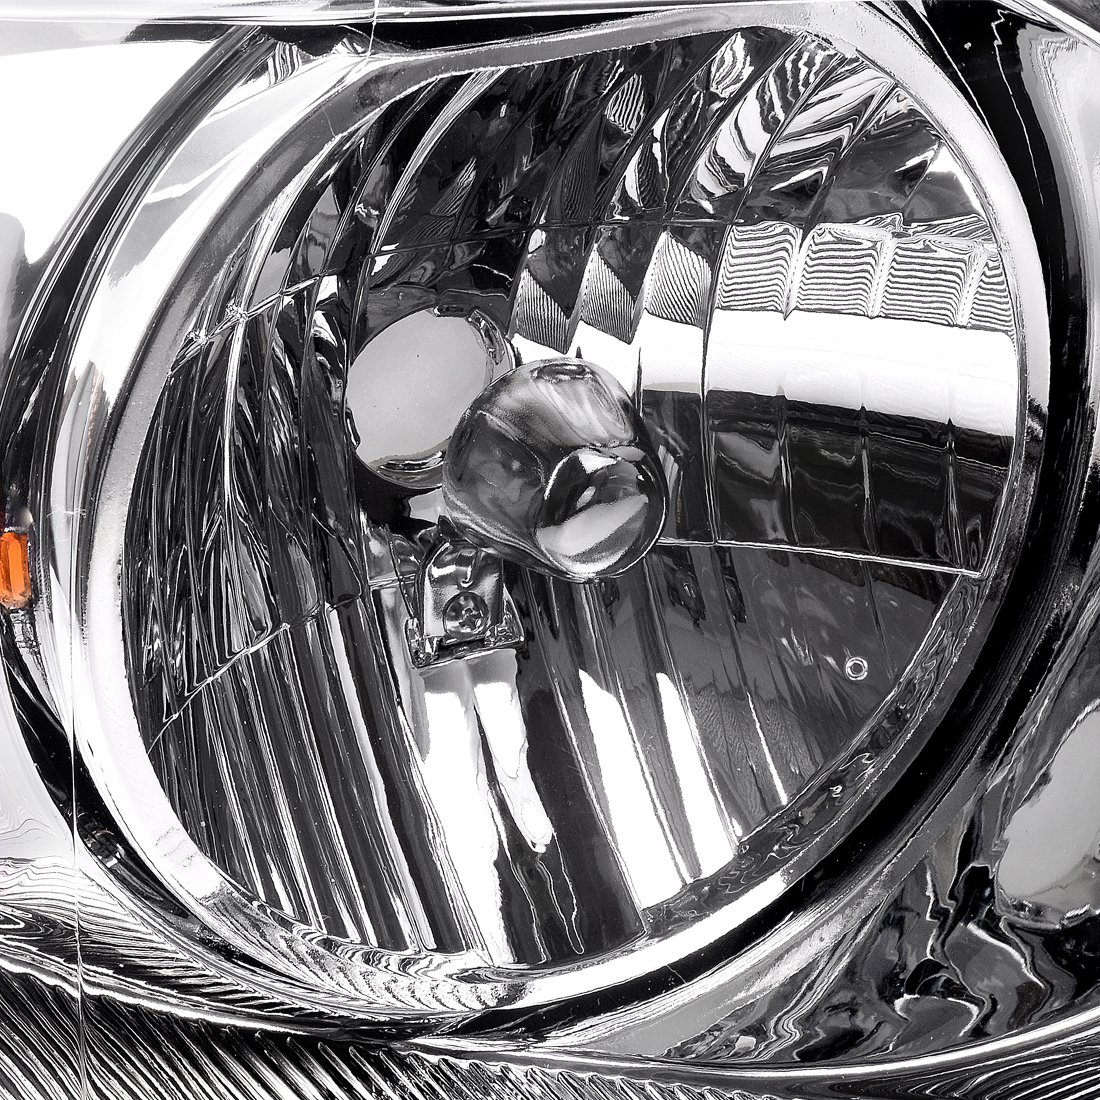 Amazon.com: For Ford F150 Pickup 2004-2008 Headlight Chrome Housing Amber  Reflector Clear Lens,Passenger & Driver side: Automotive